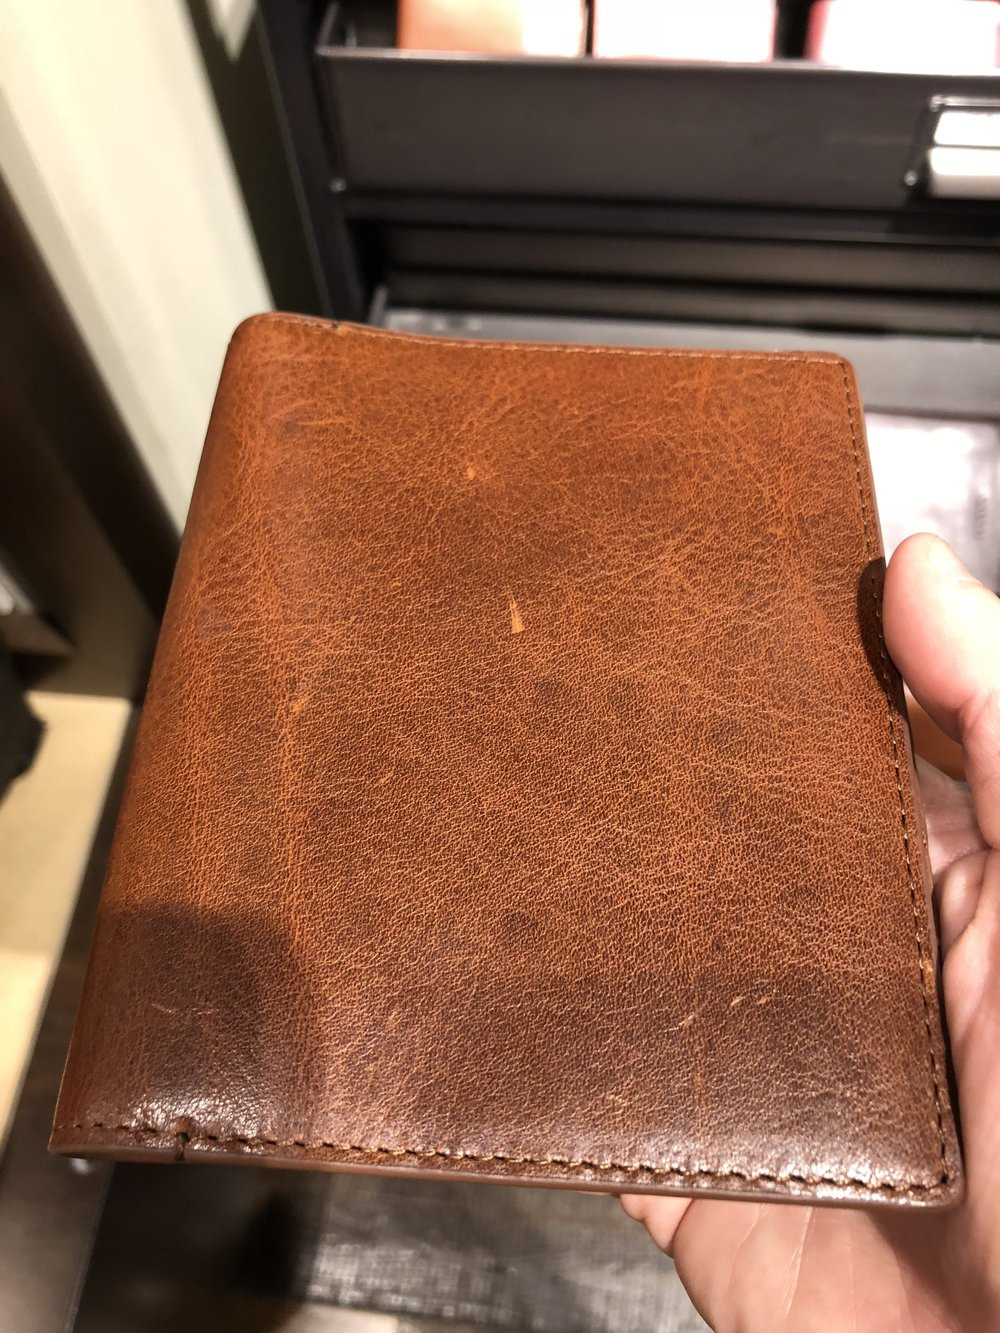 Book - Leather Reference.jpeg